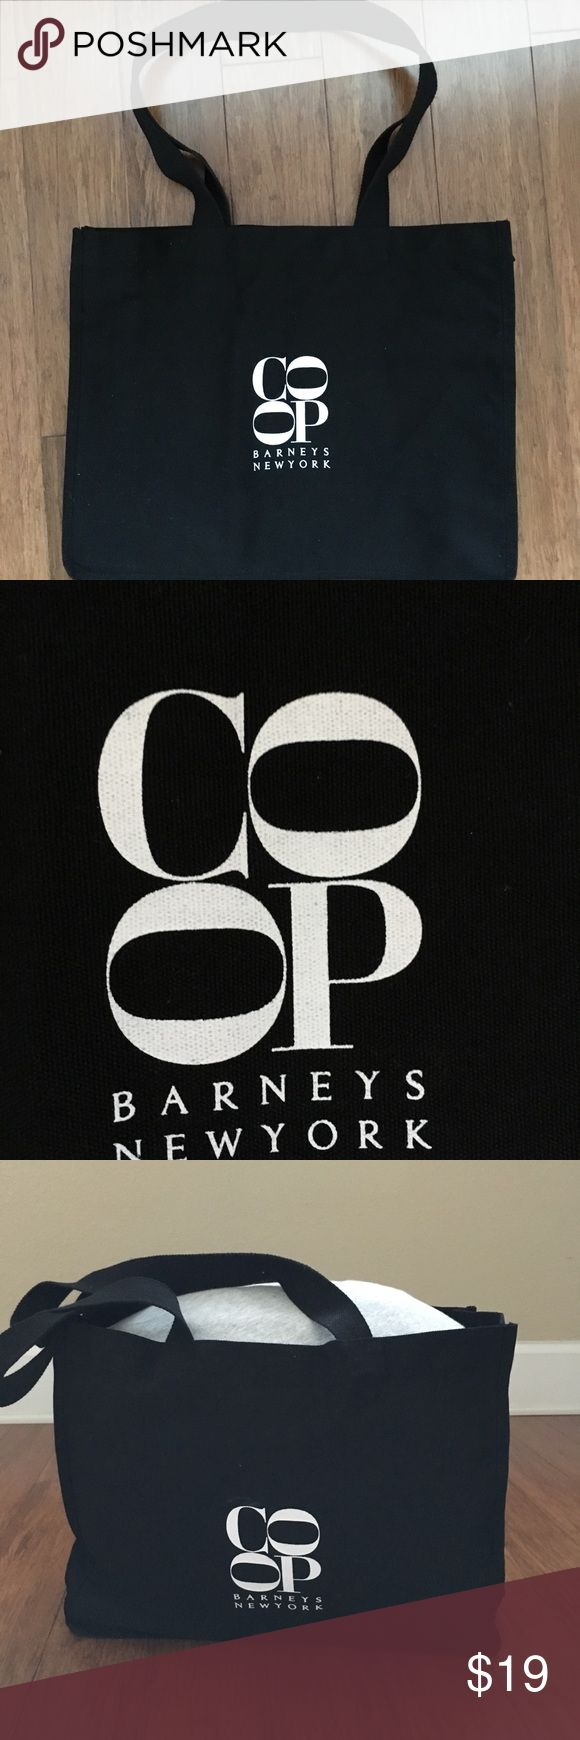 """Barney's New York Canvas Shopping Bag ⭐️ Black Canvas tote from Barney's Co-Op.  ⭐️ Approximate measurements: 16x12x6"""". ⭐️ Strap drop: 12"""" ⭐️ Always thoughtfully wrapped & ready to be shipped the day of purchase. Barneys New York CO-OP Bags Totes"""